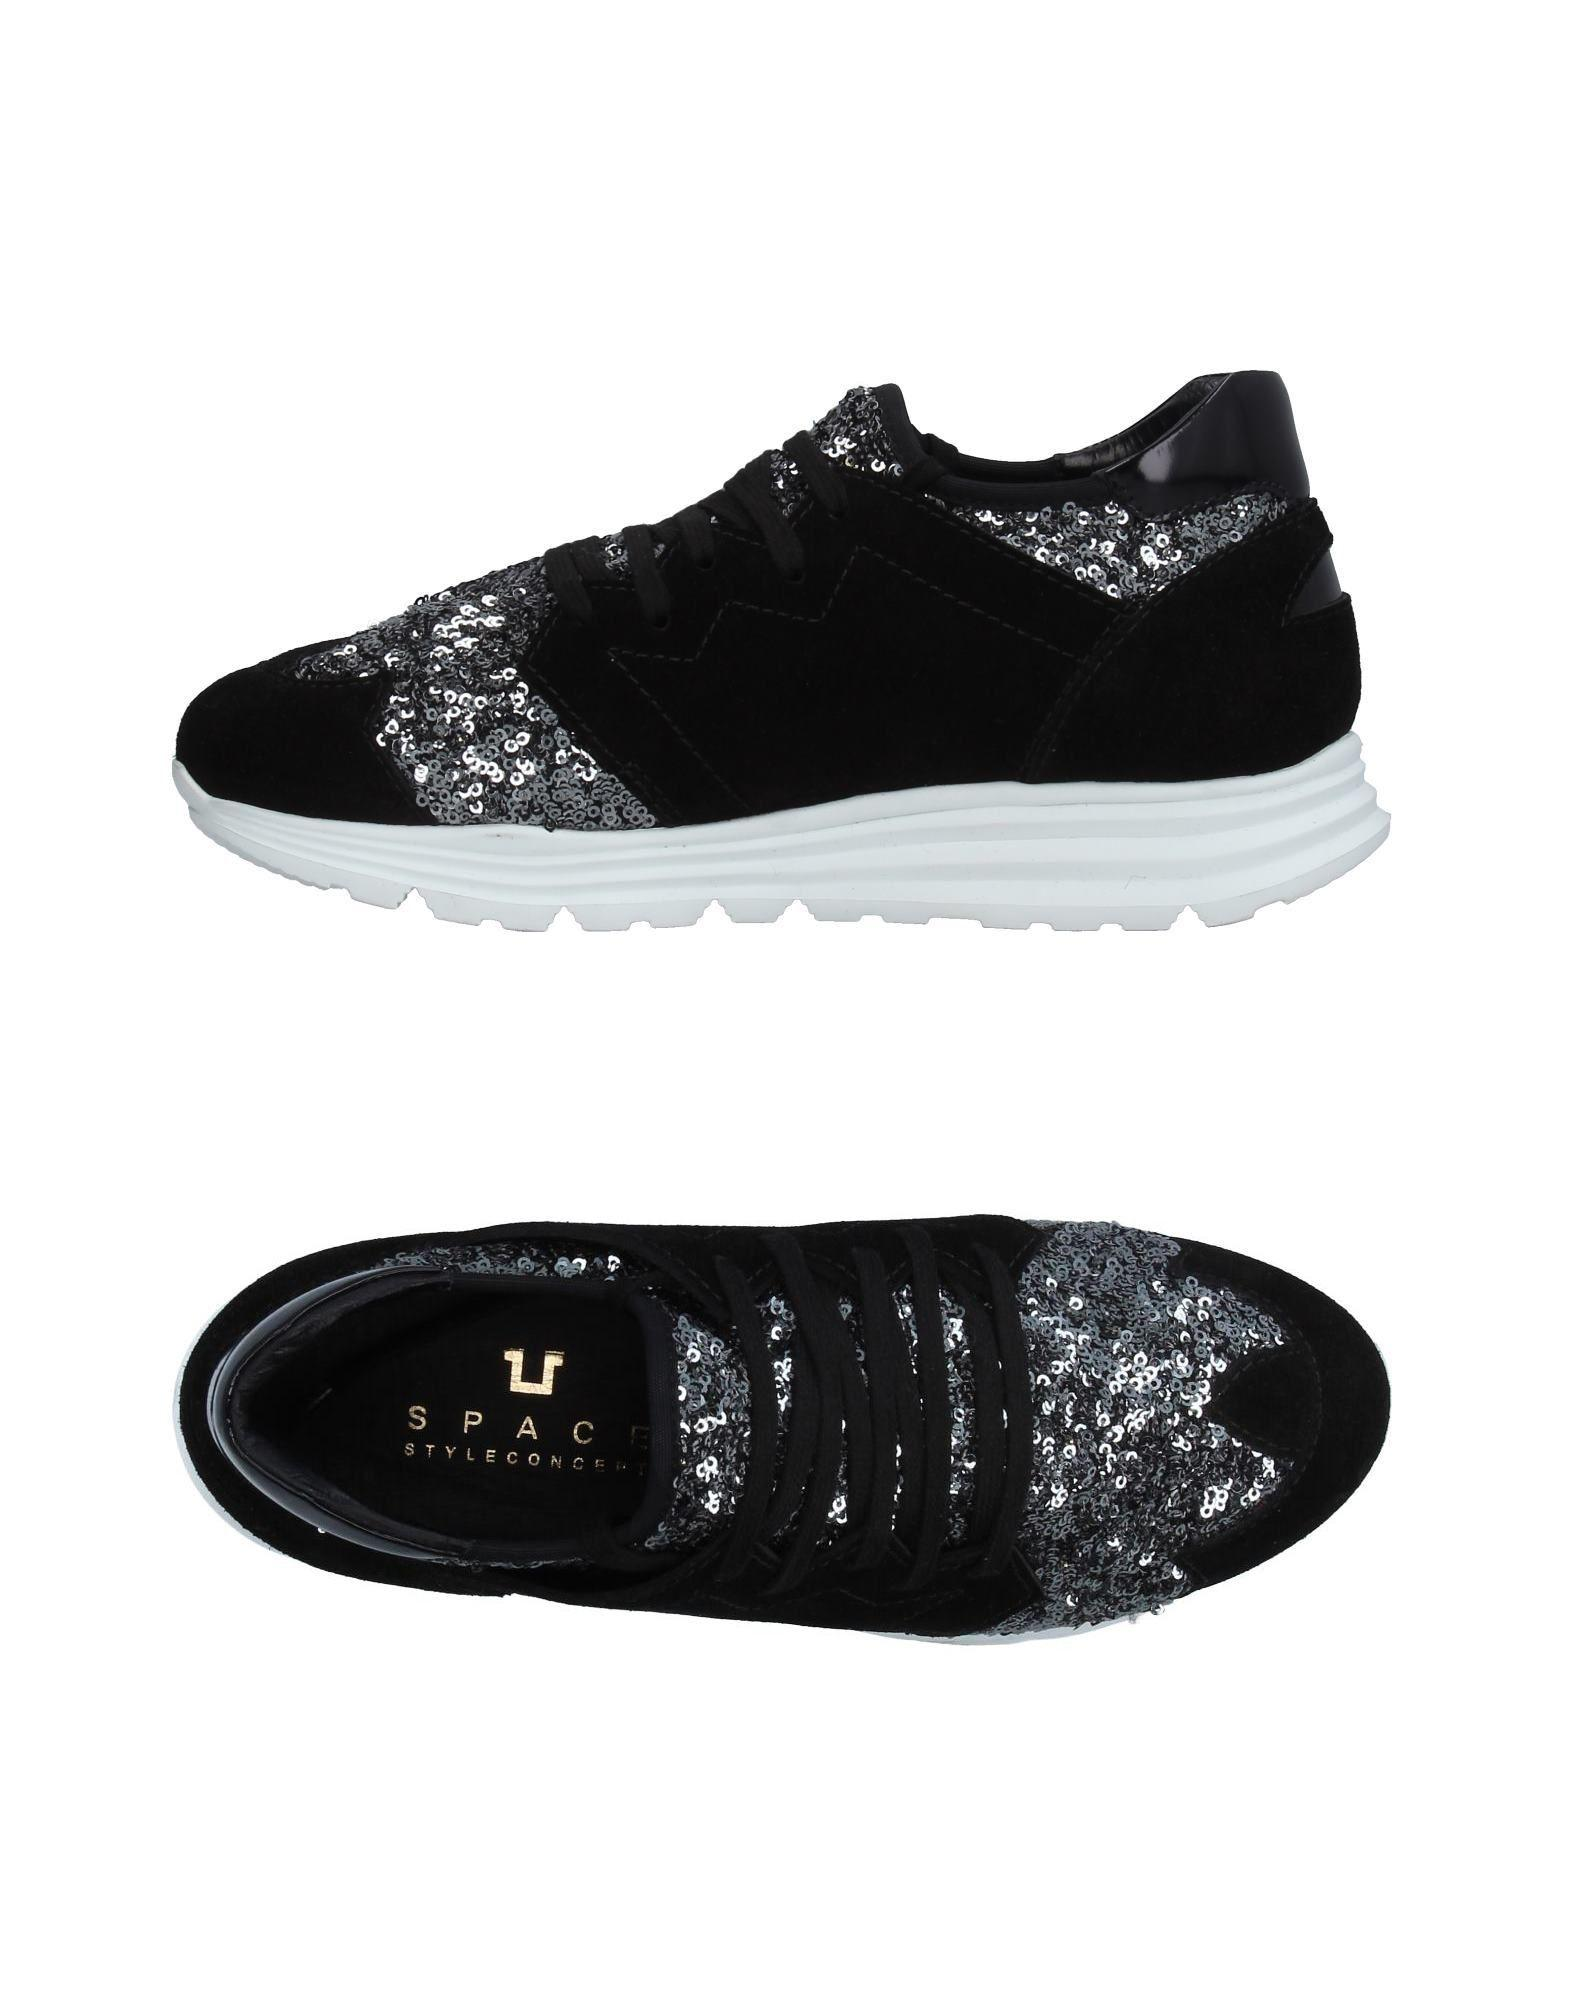 FOOTWEAR - Low-tops & sneakers Space Style Concept TYAm9Ndzt